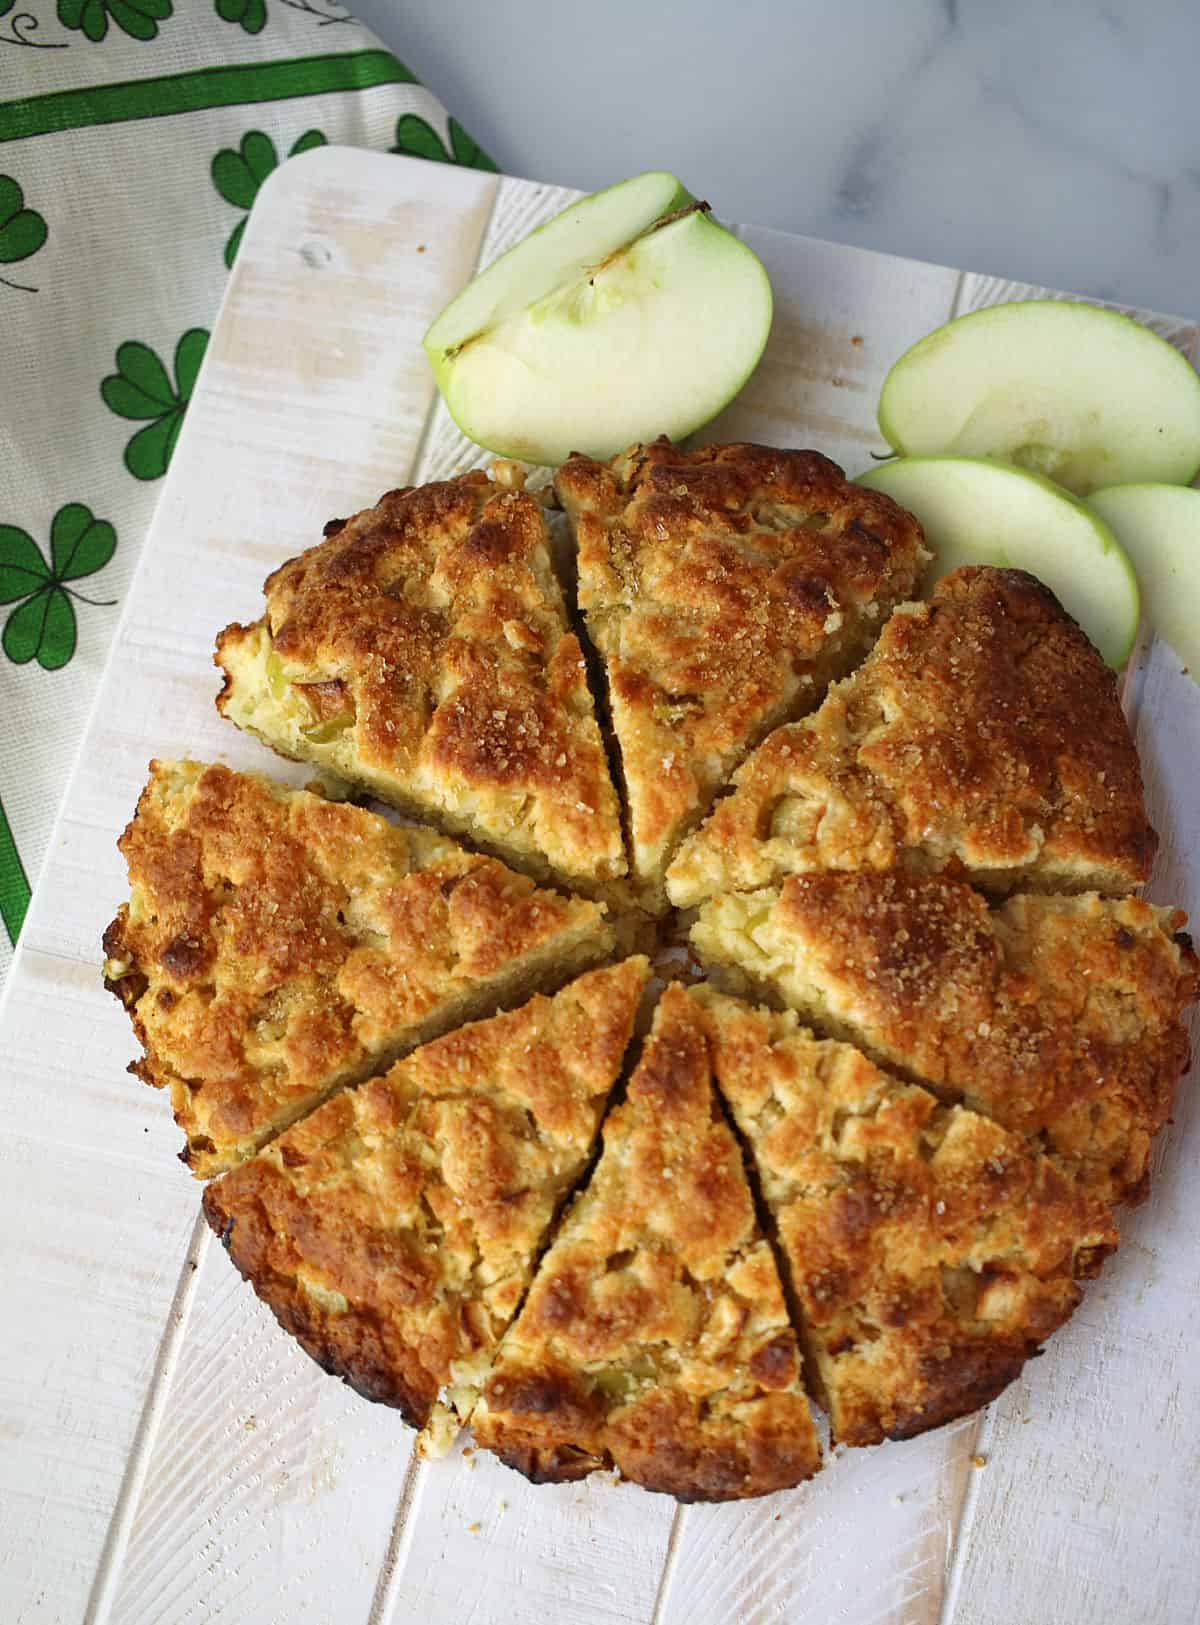 Baked apple scones cut in wedges on a white cutting board.